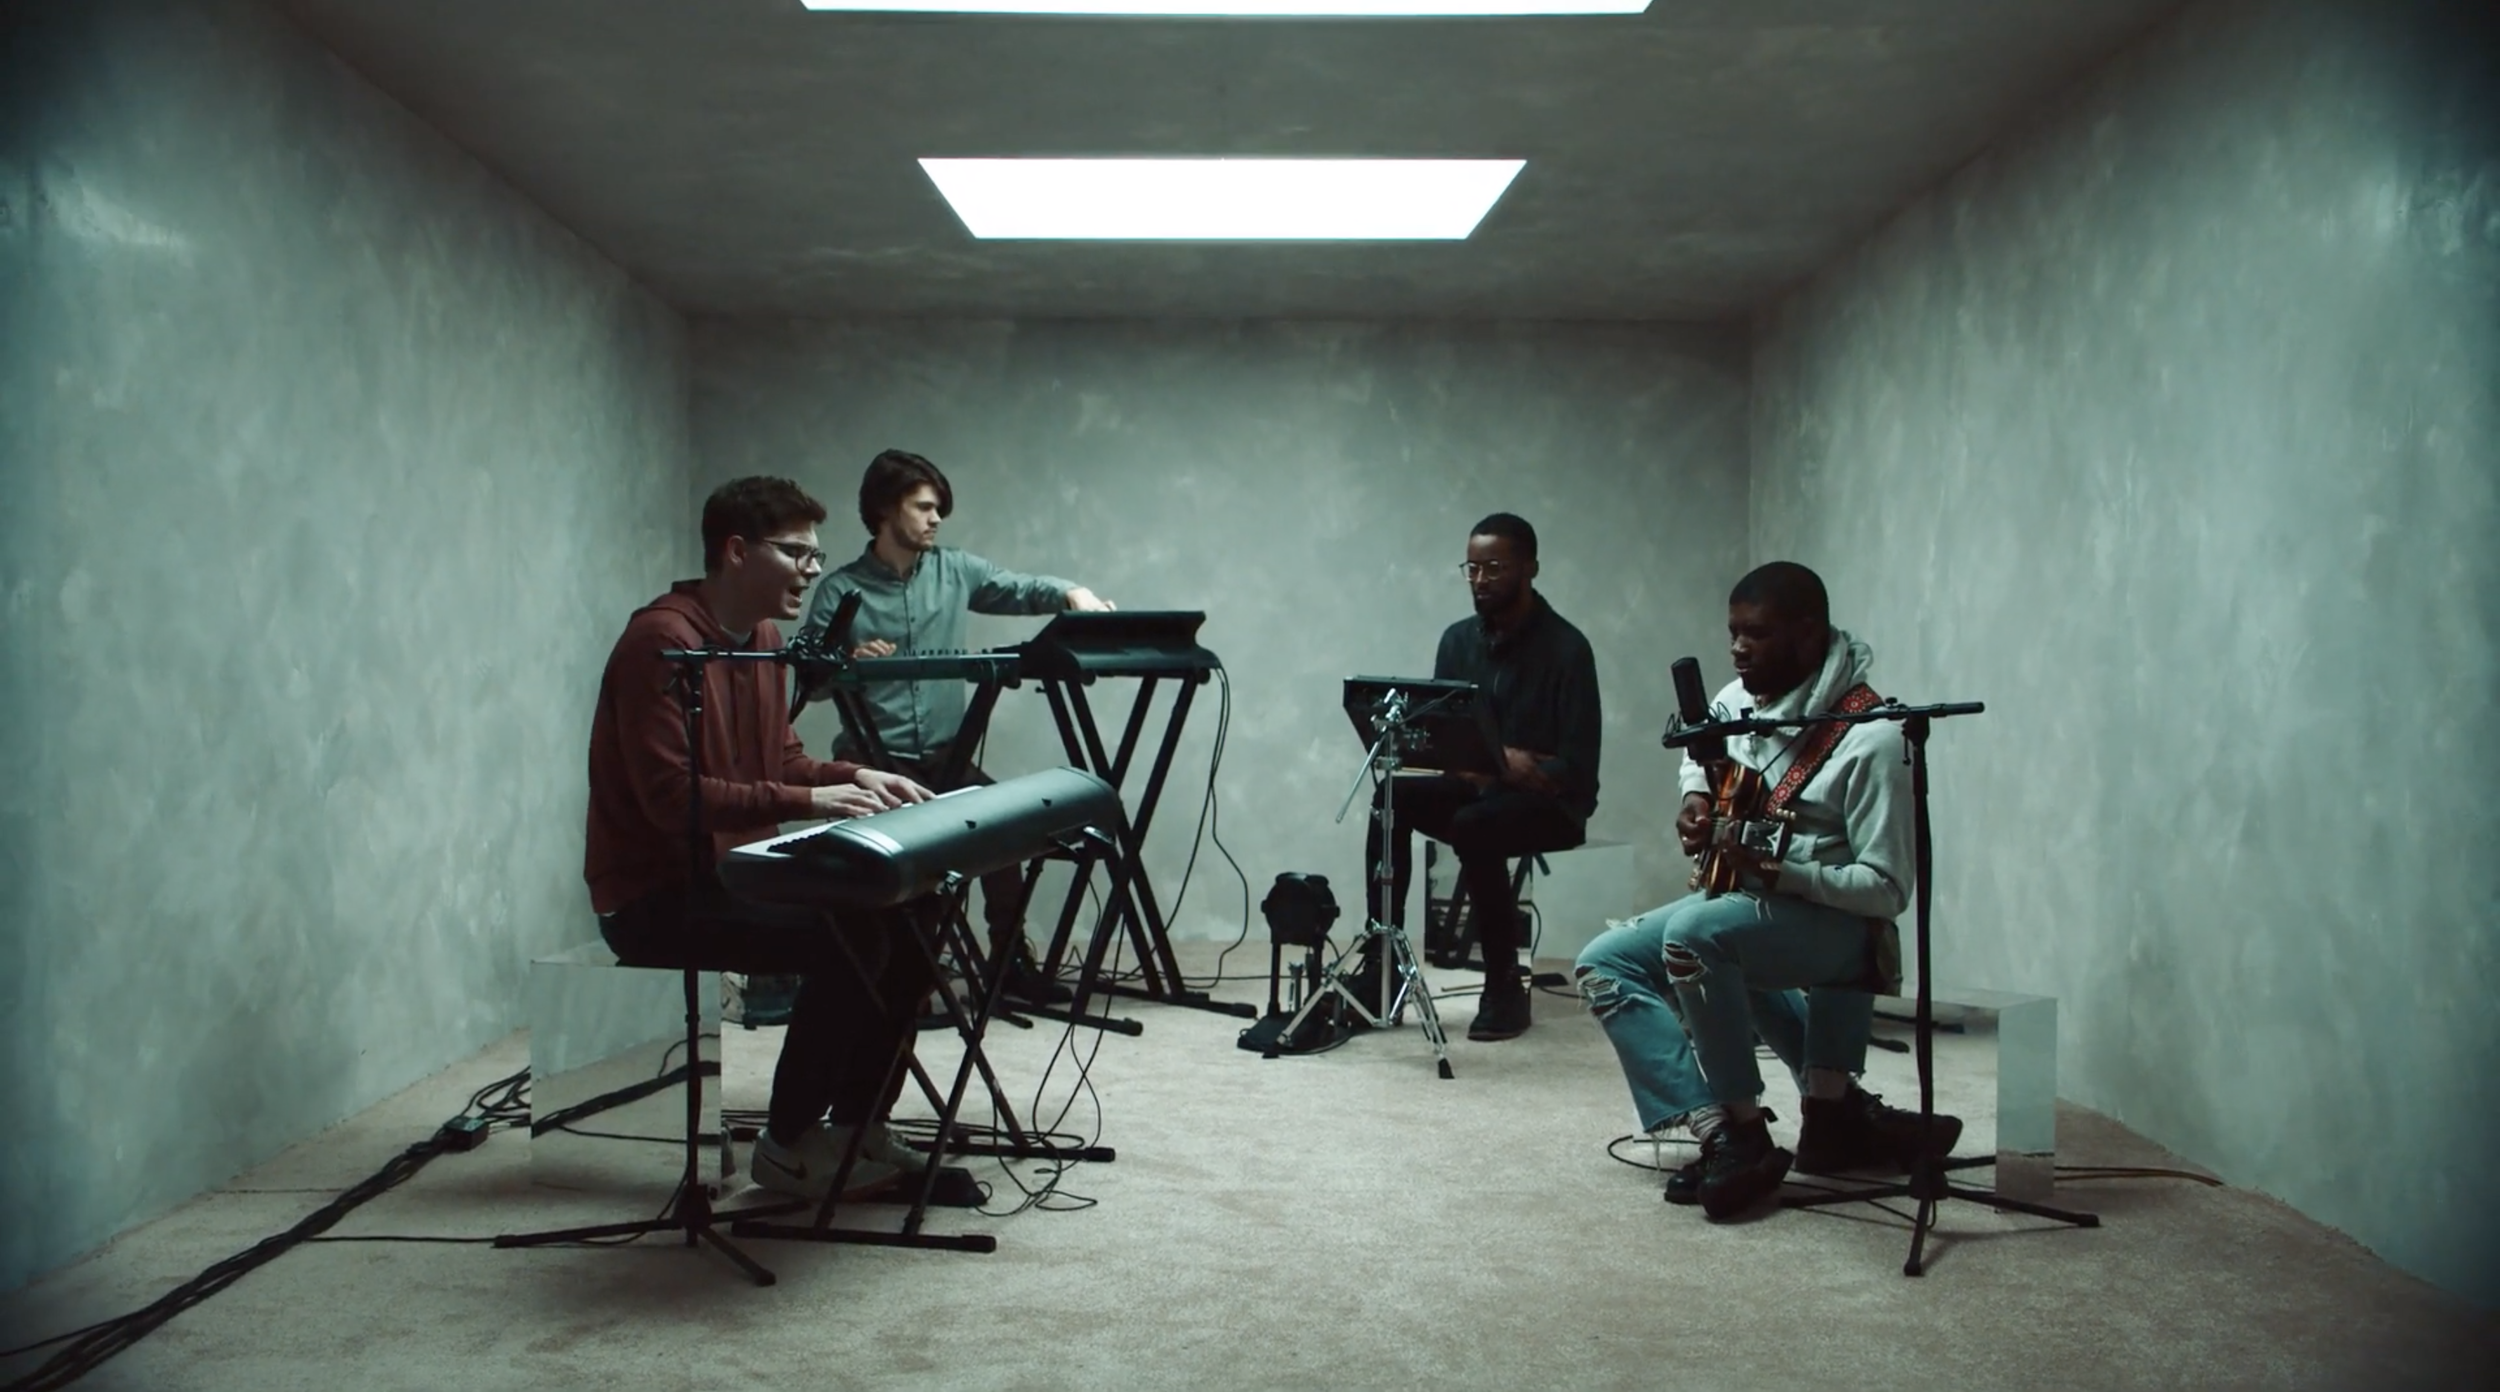 Kevin Garrett Partners With Vevo to Release Live Videos for